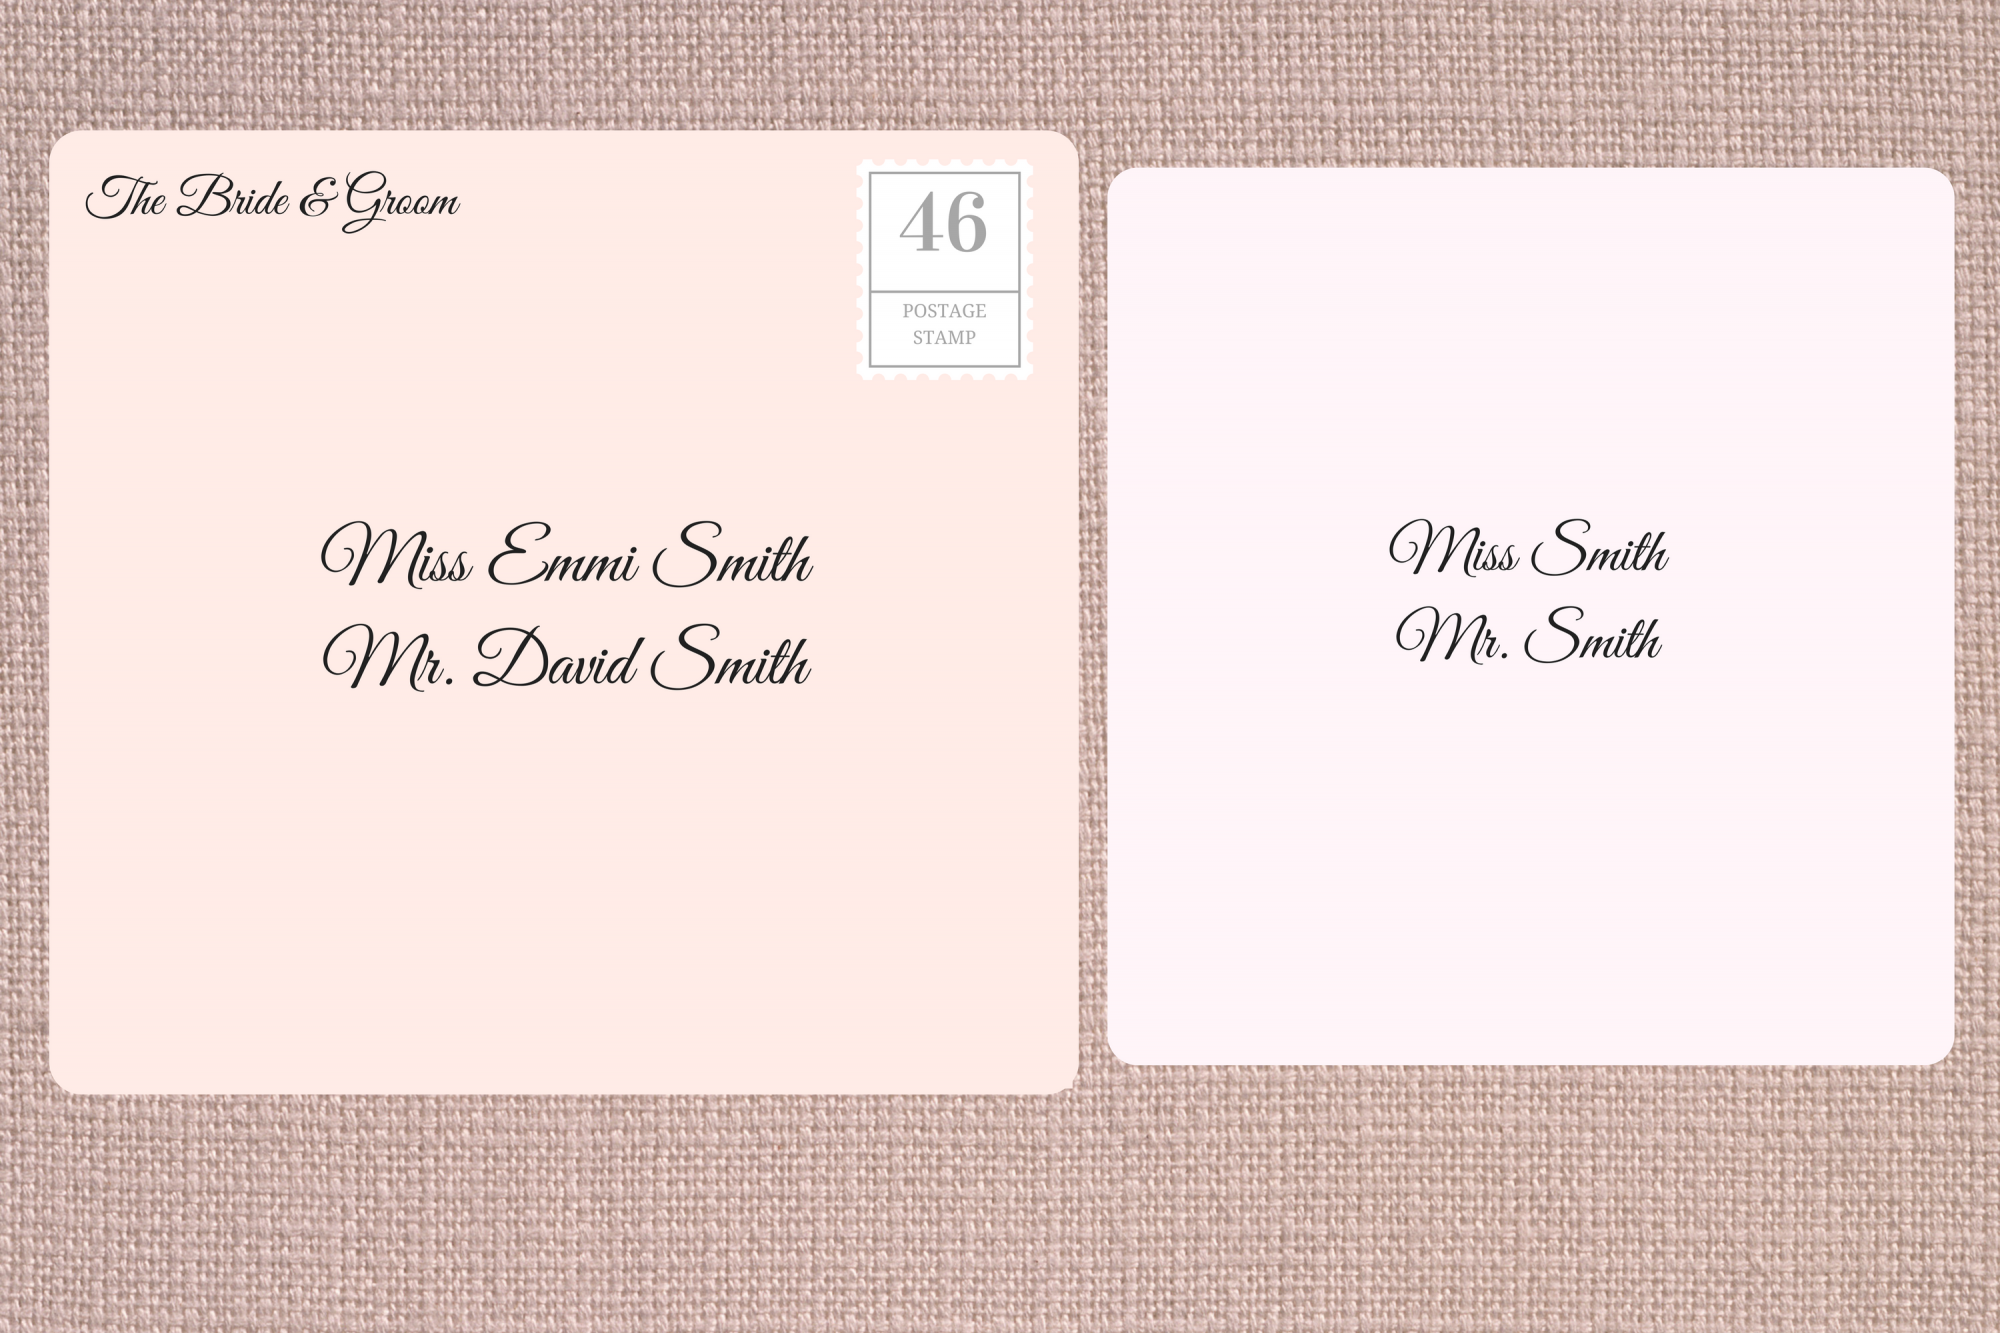 Addressing Double Envelope Wedding Invitations to Family with Adult Children